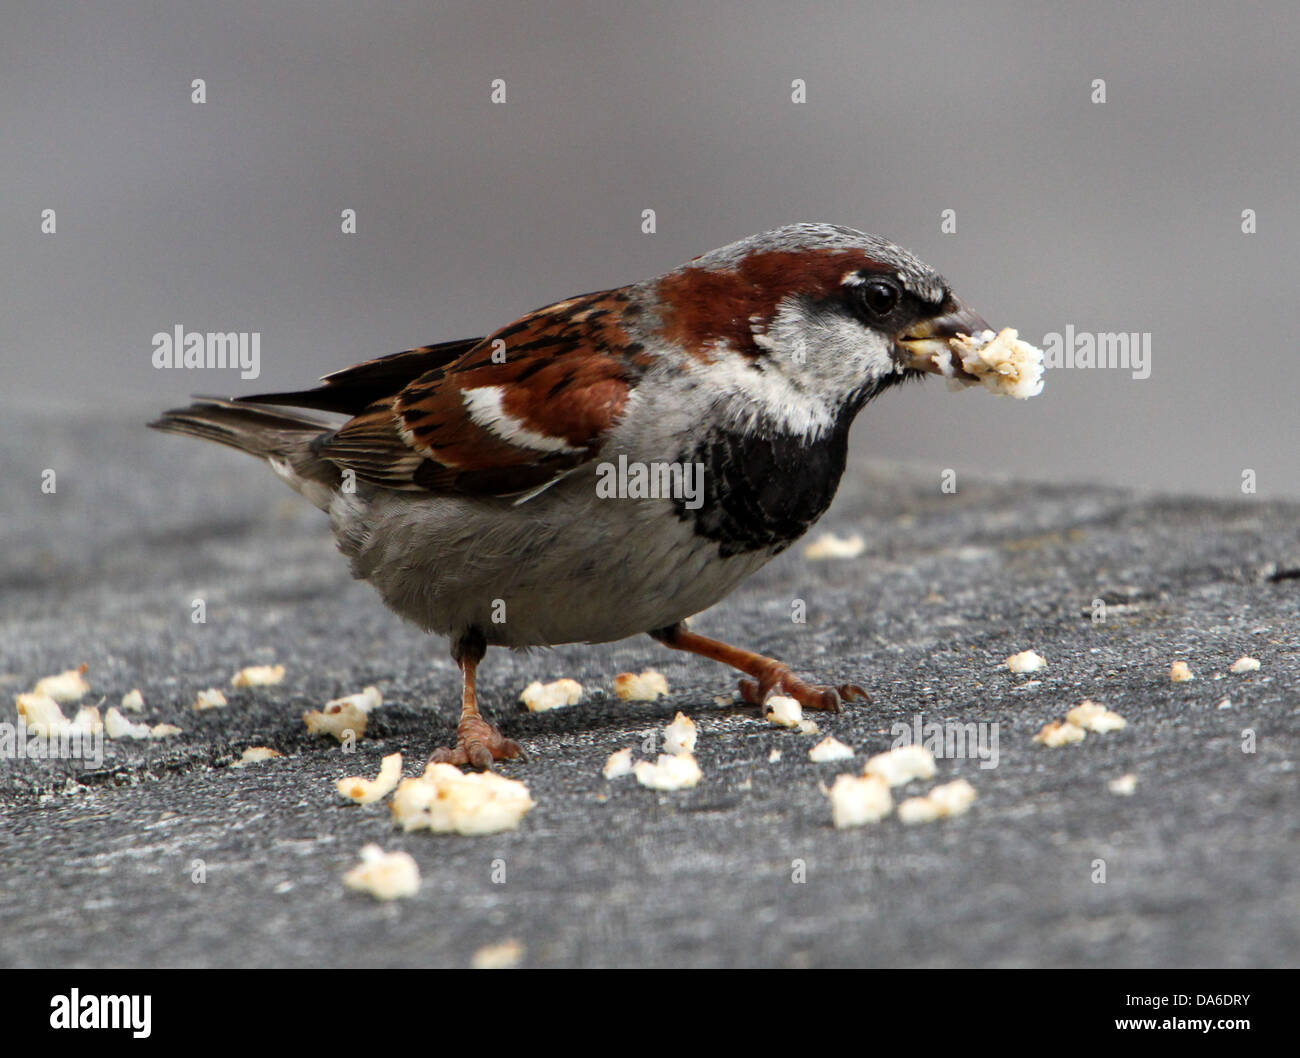 Close-up of a male House Sparrow (Passer domesticus) visiting my balcony (over 40 images in series) Stock Photo